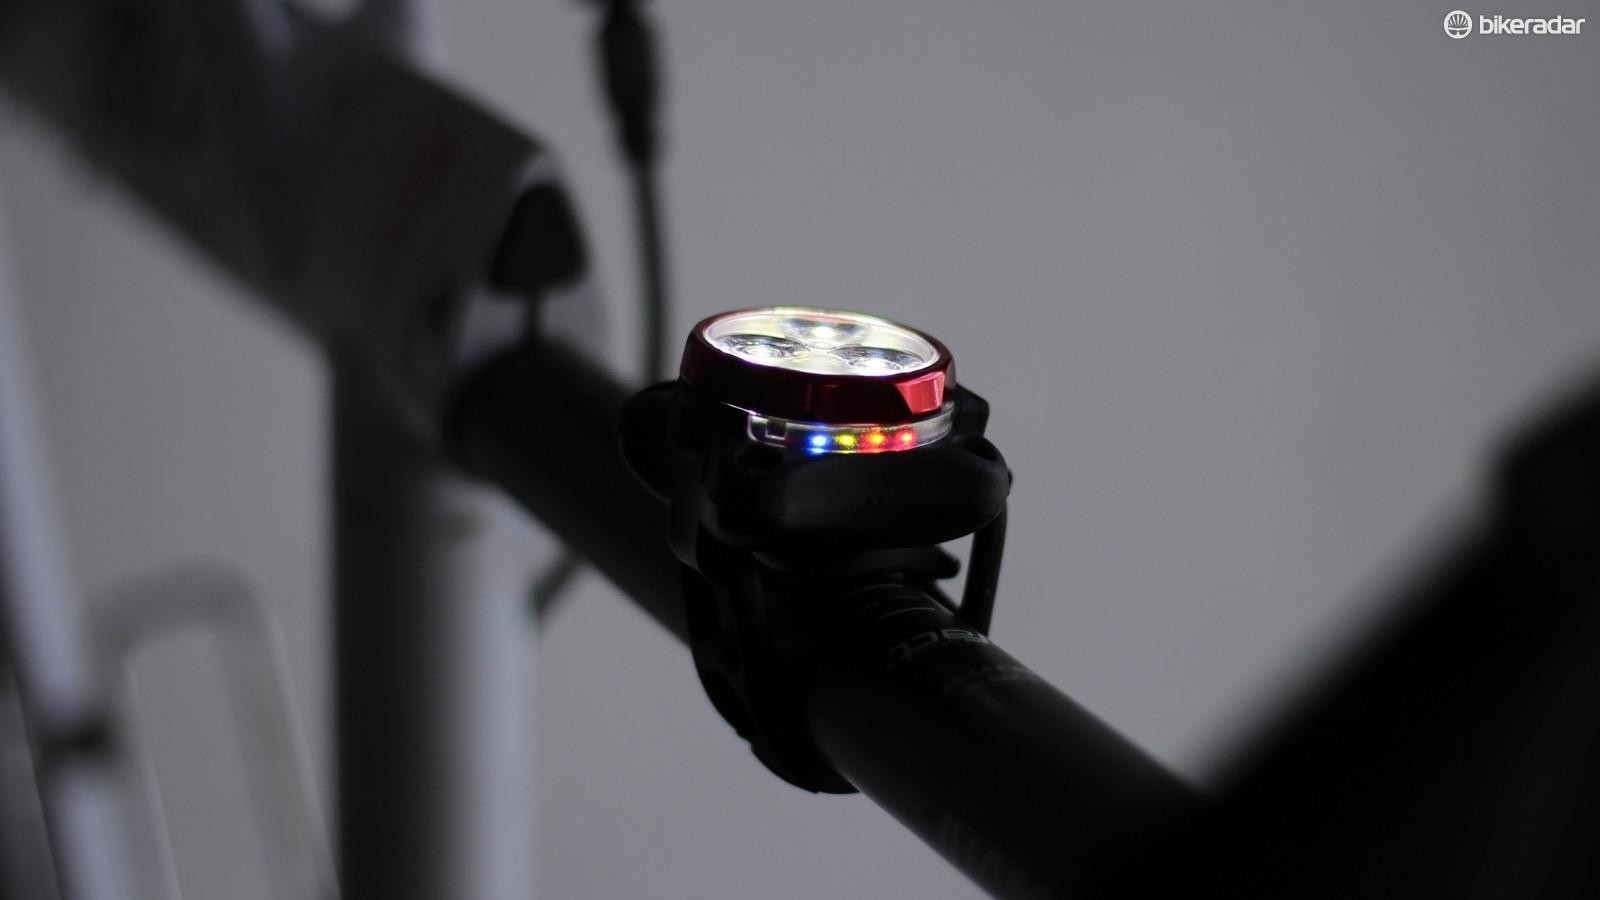 The rear Zectro Drive goes up to 20 lumens with five different light patterns